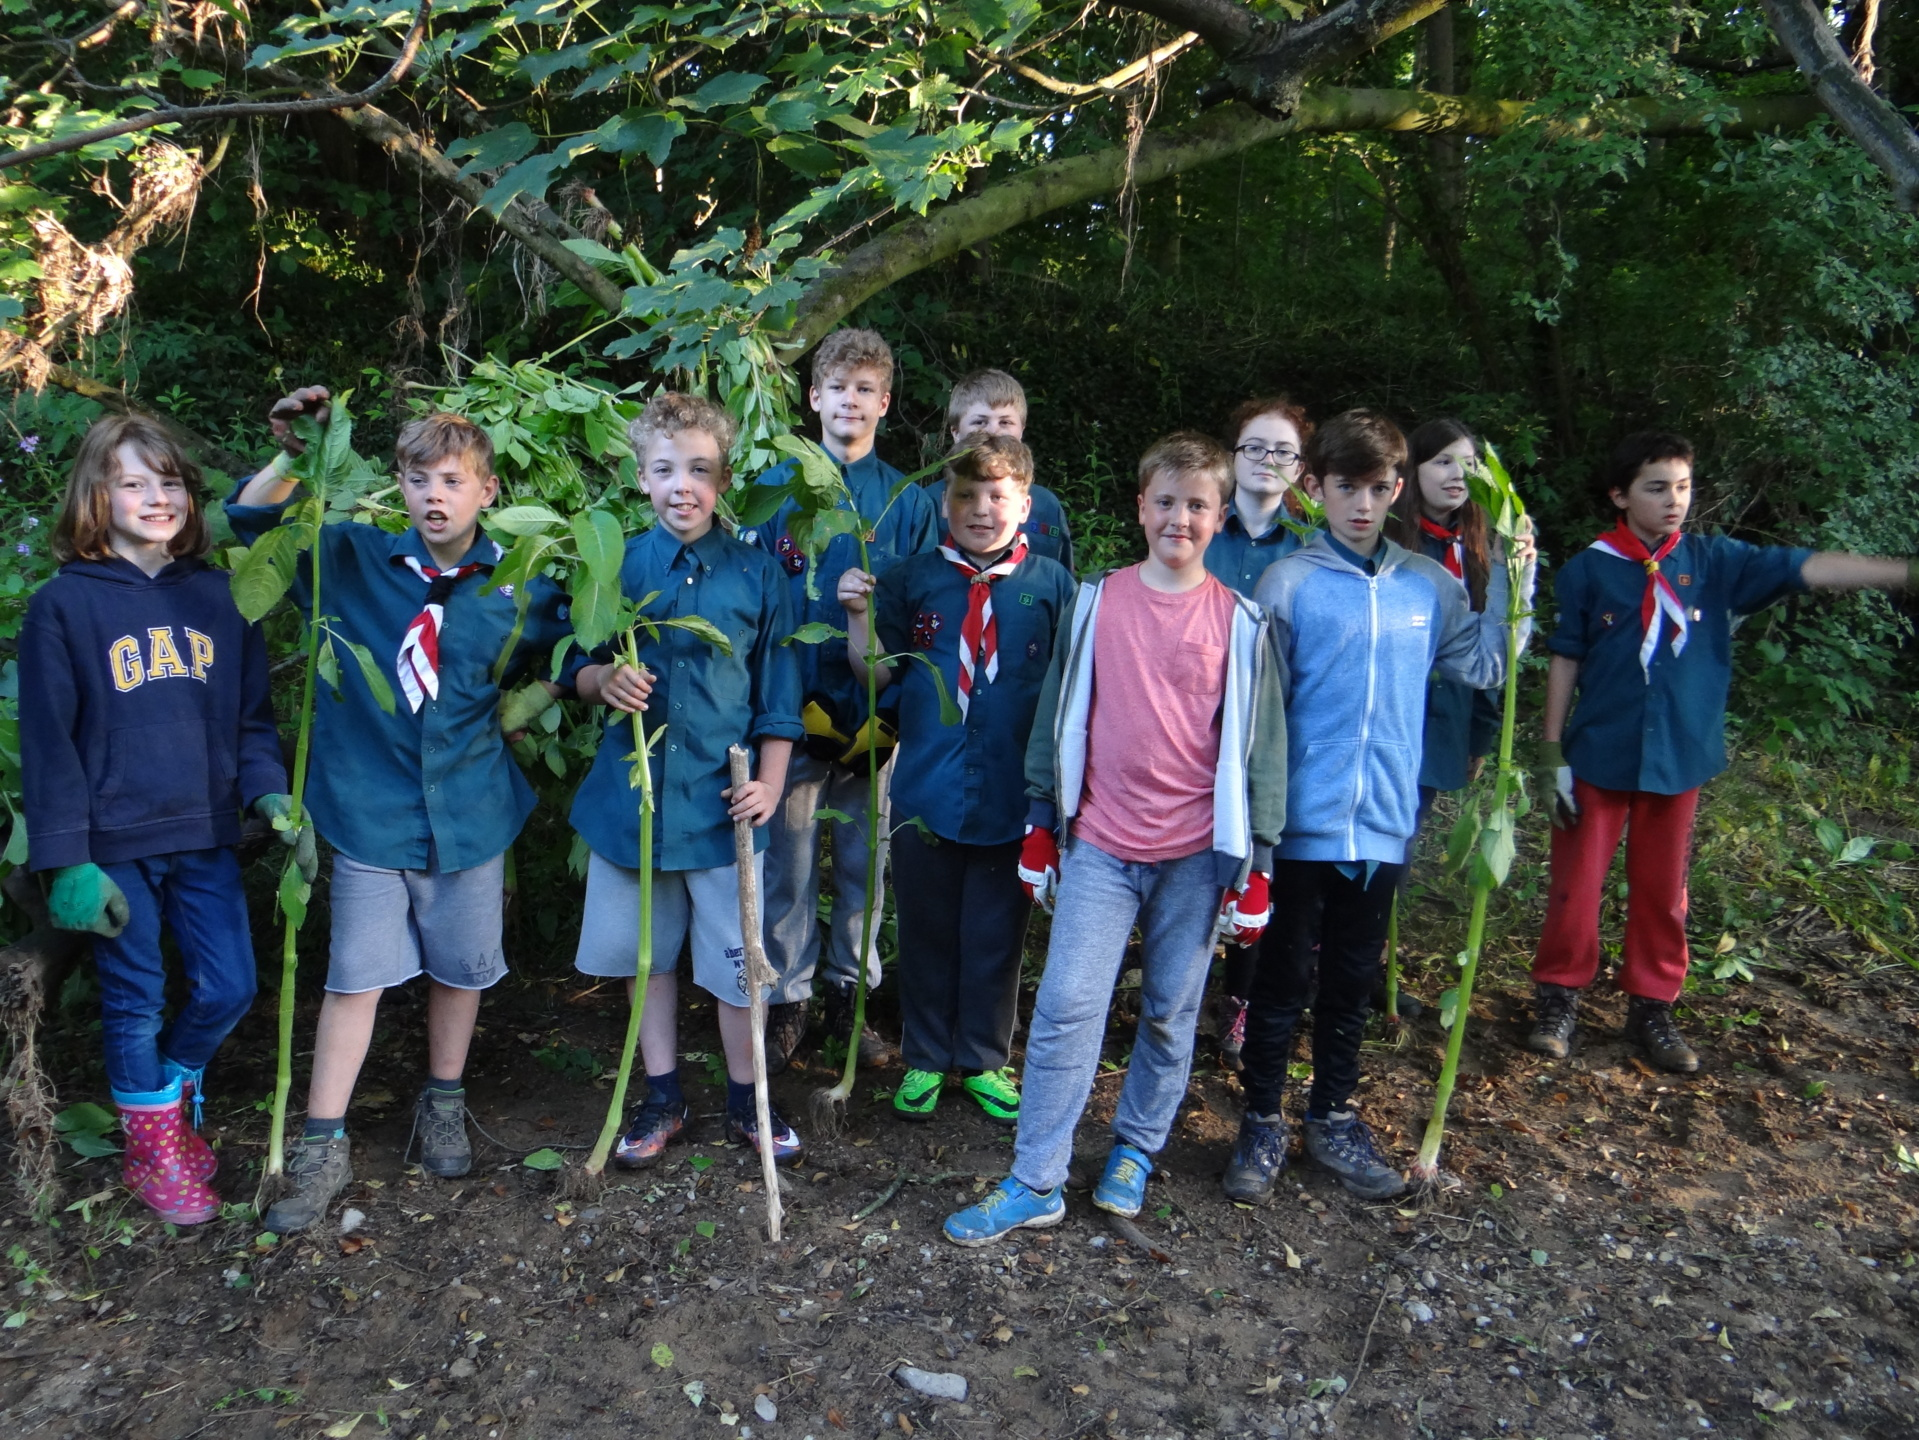 The Scouts had an evening pulling Balsam in Ox Close Wood